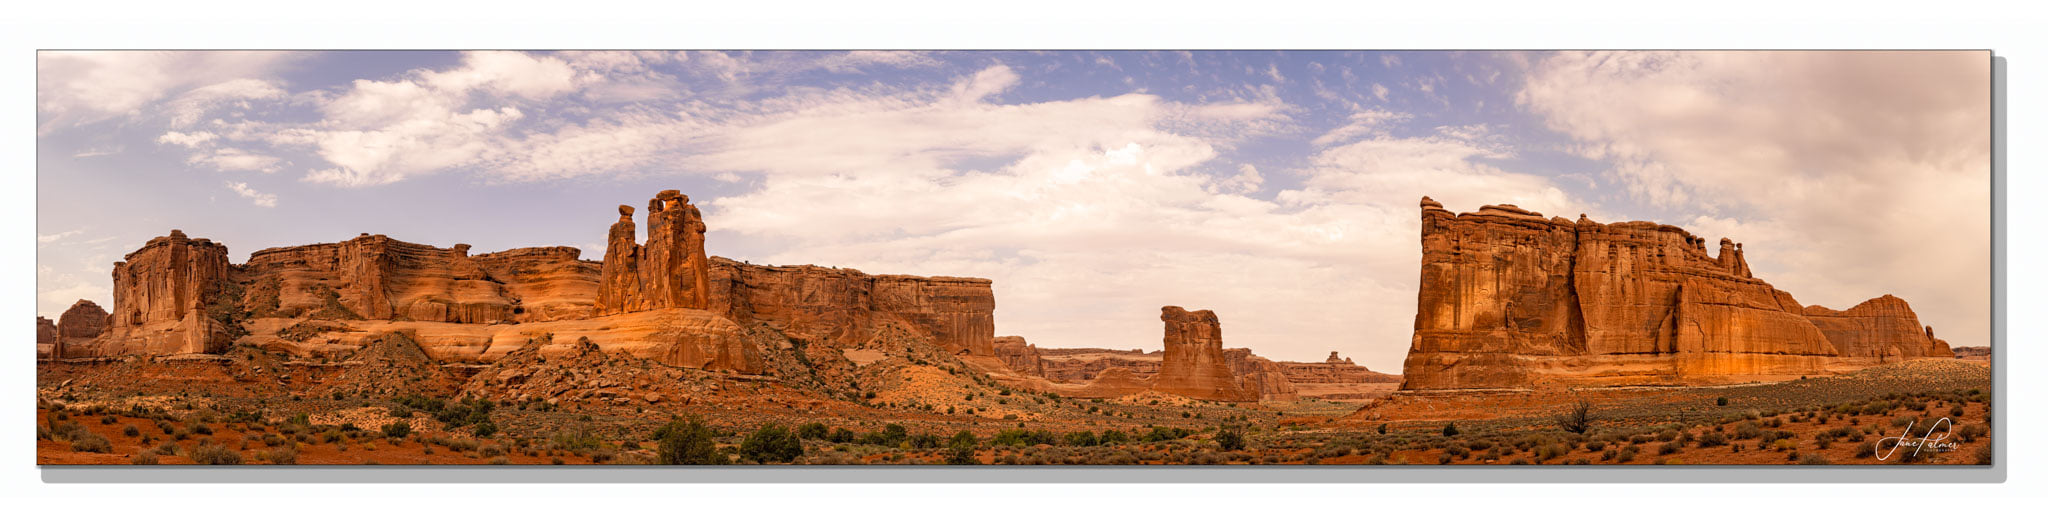 Arches Pano